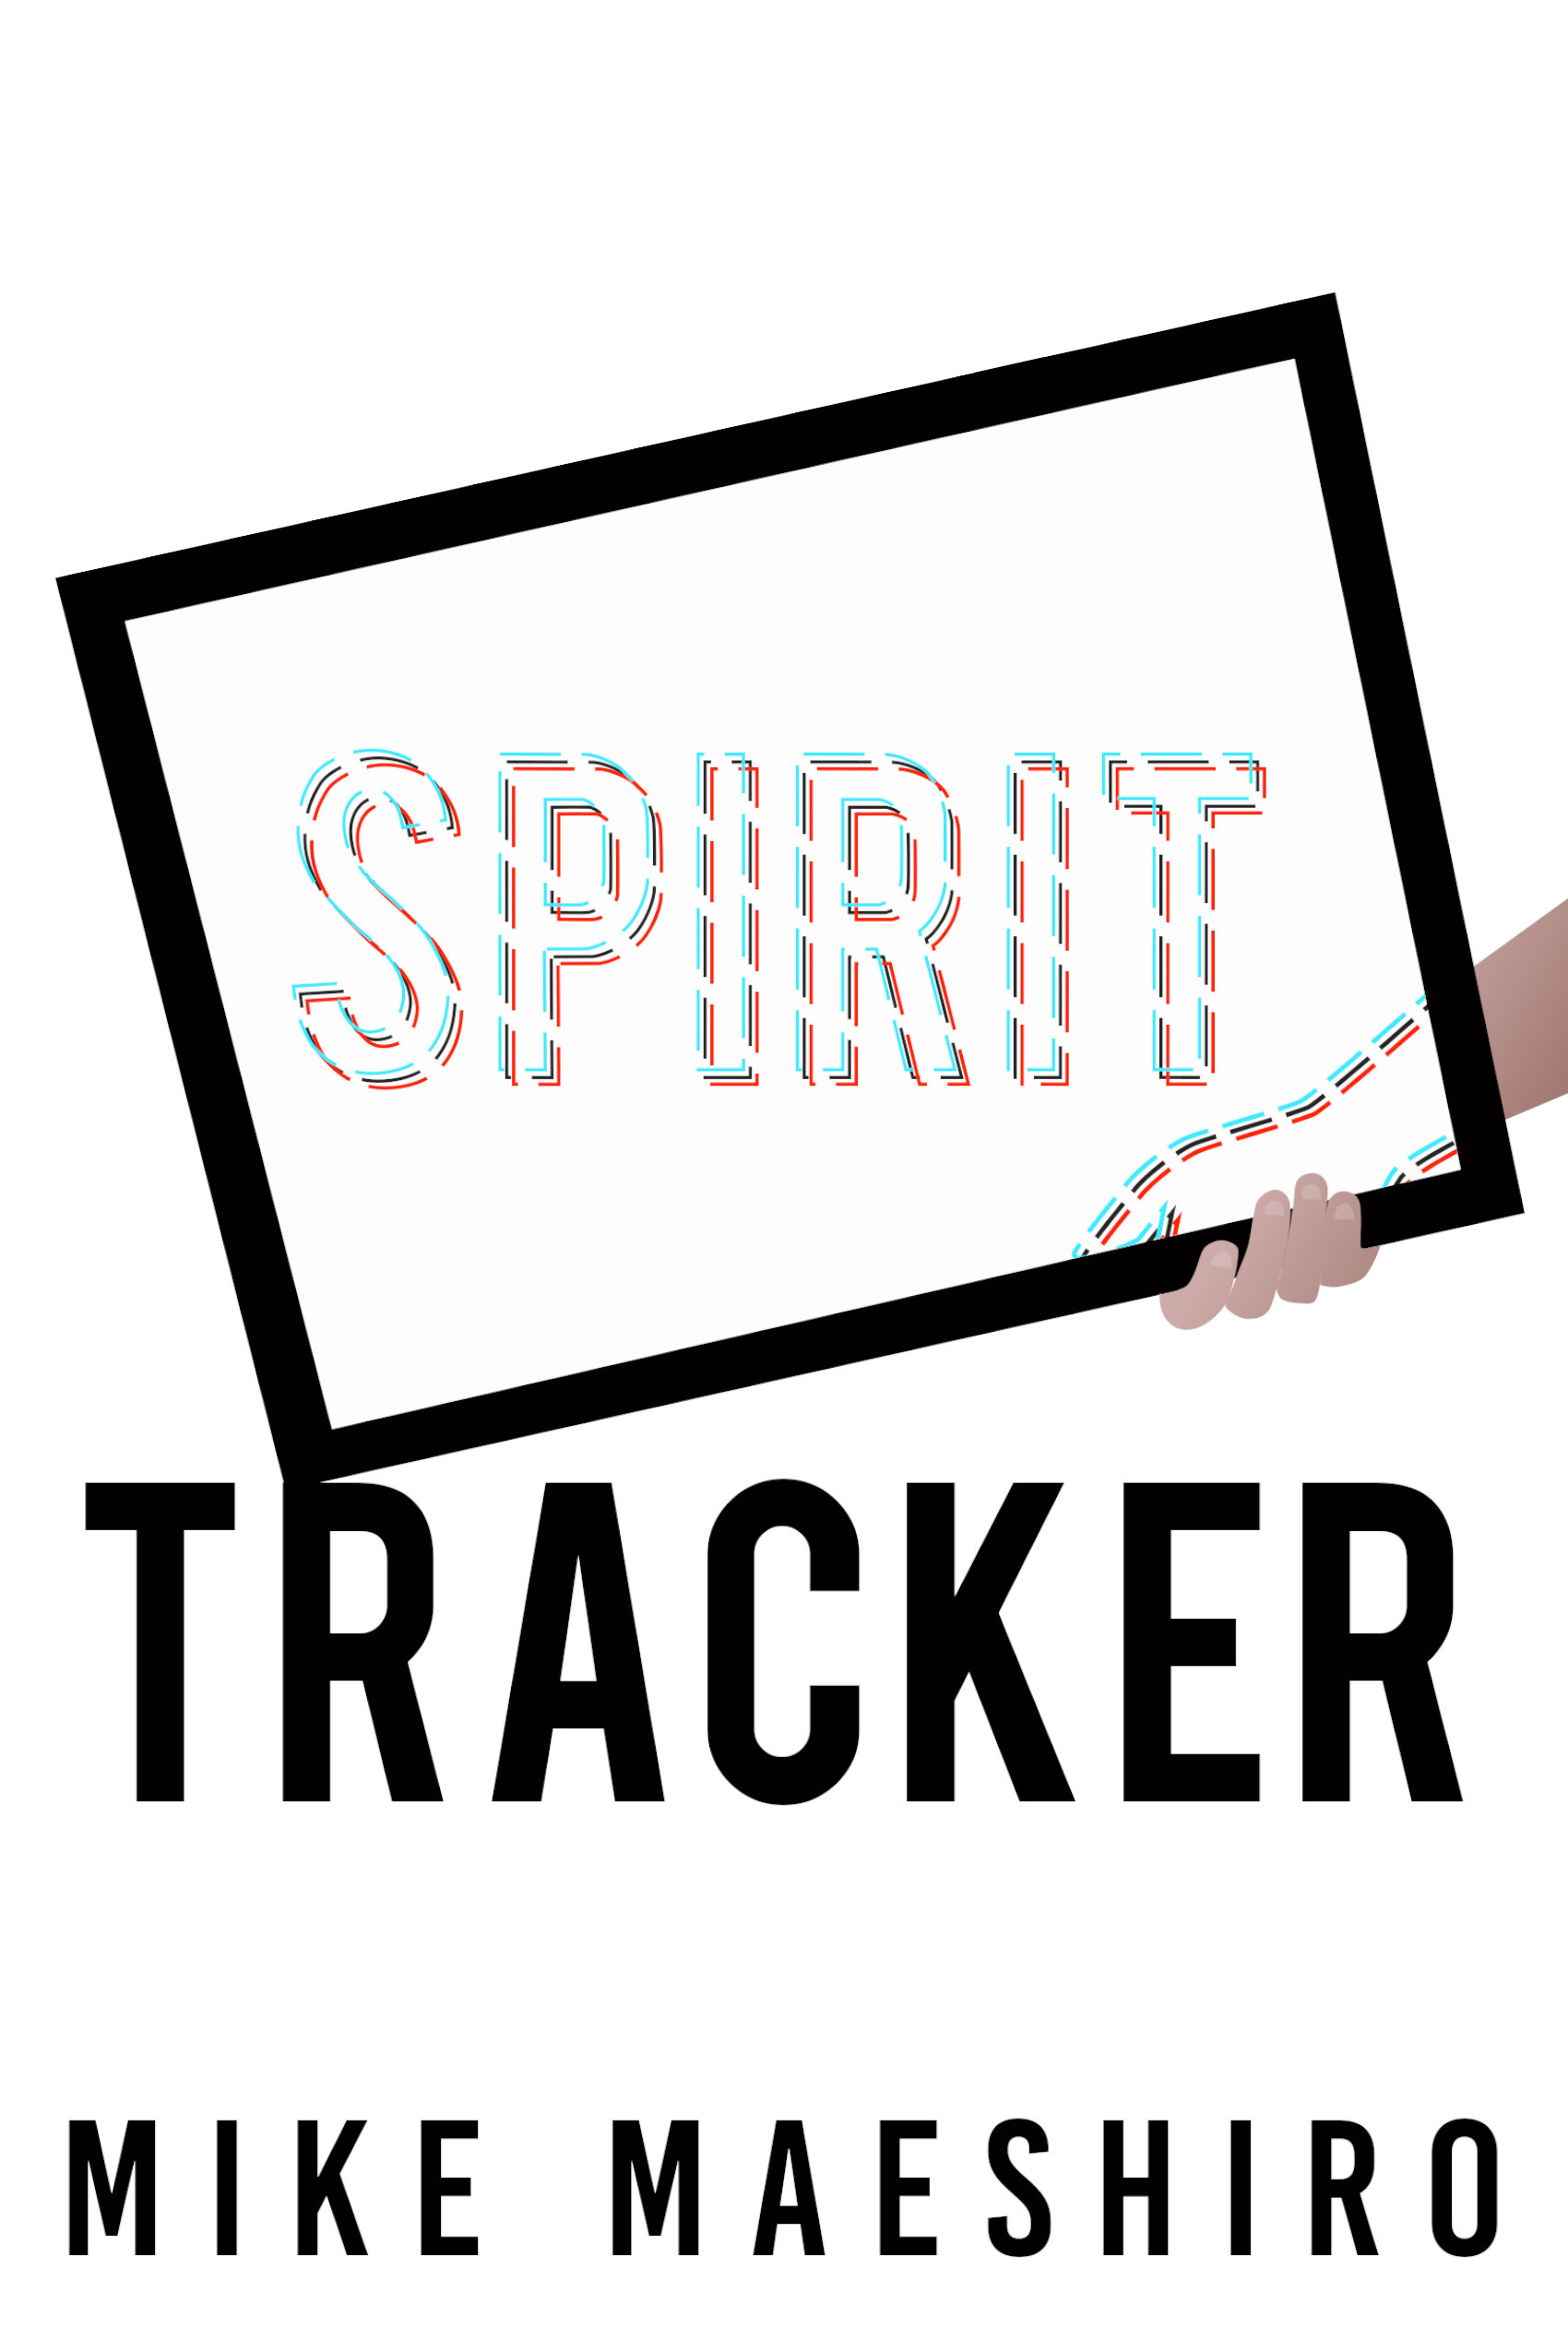 Spirit Tracker - An eBook on how the spirit world influences us on a regular basis and what we can do about it.